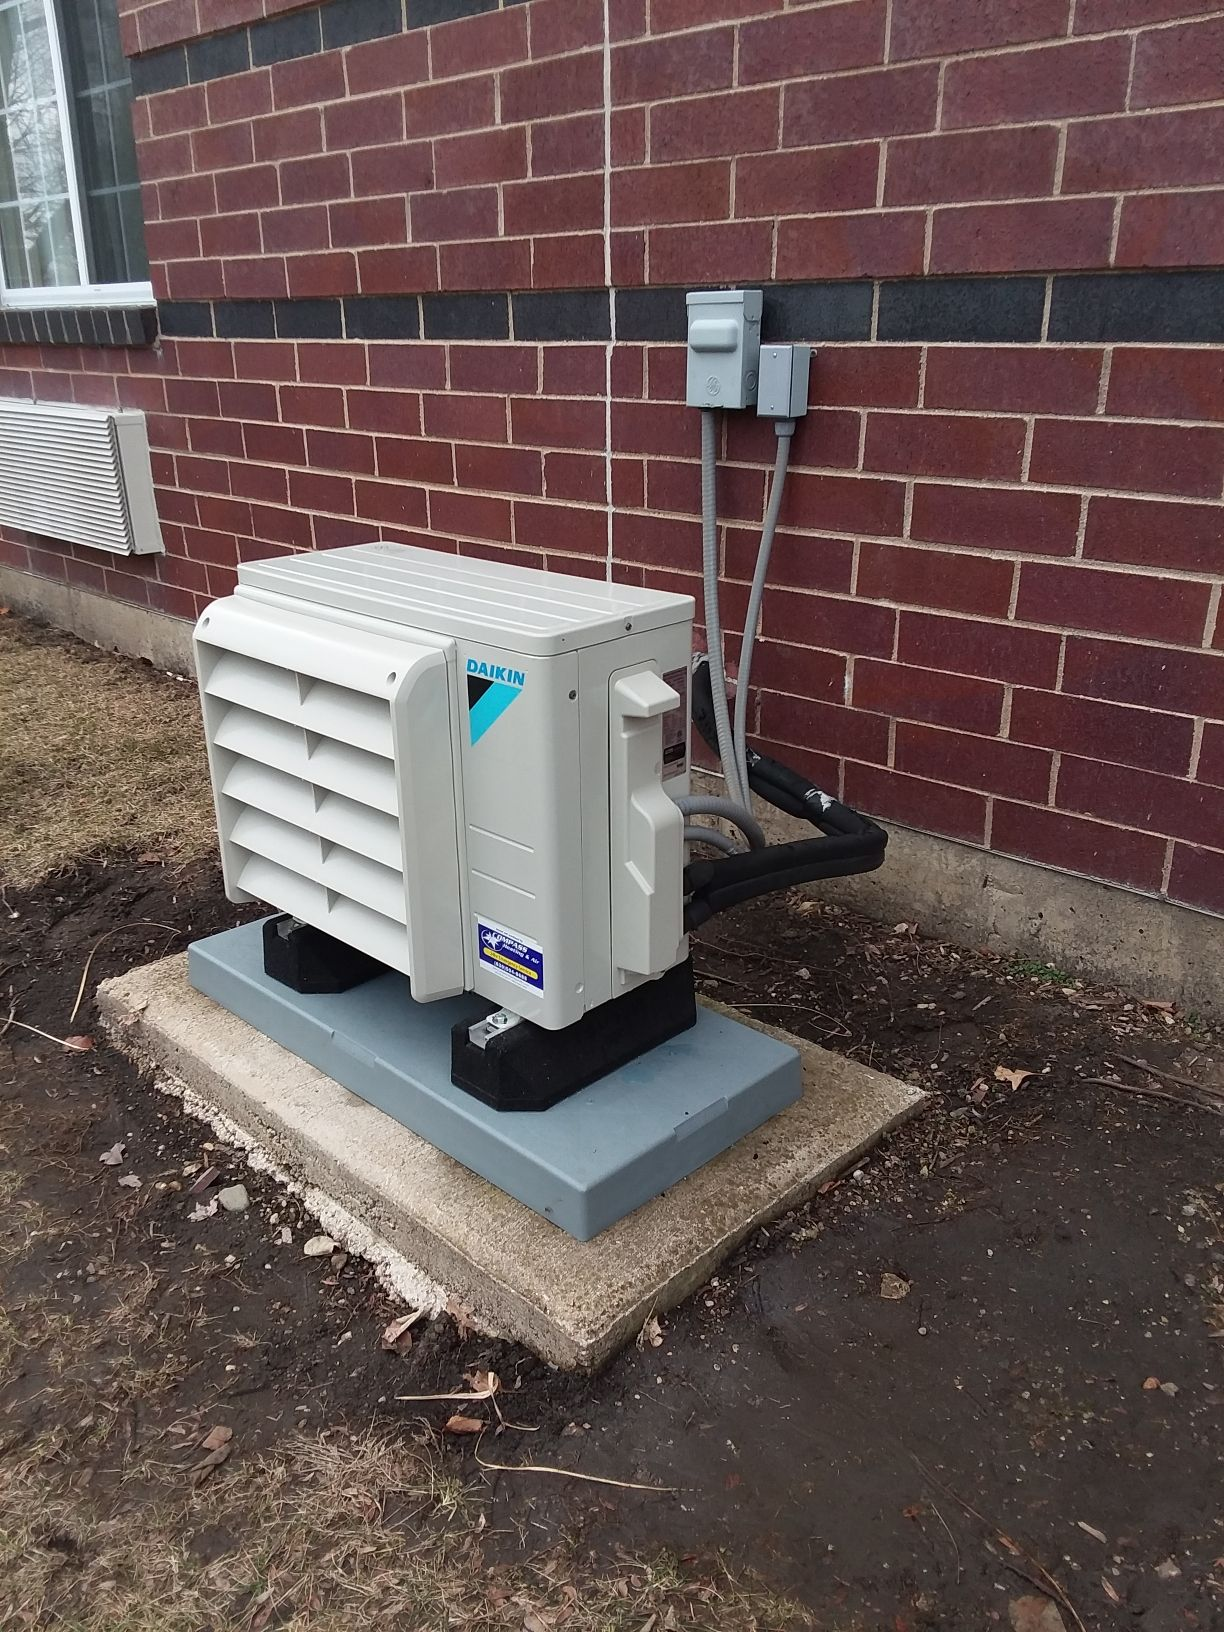 Daikin outdoor unit installed with baffle option to allow